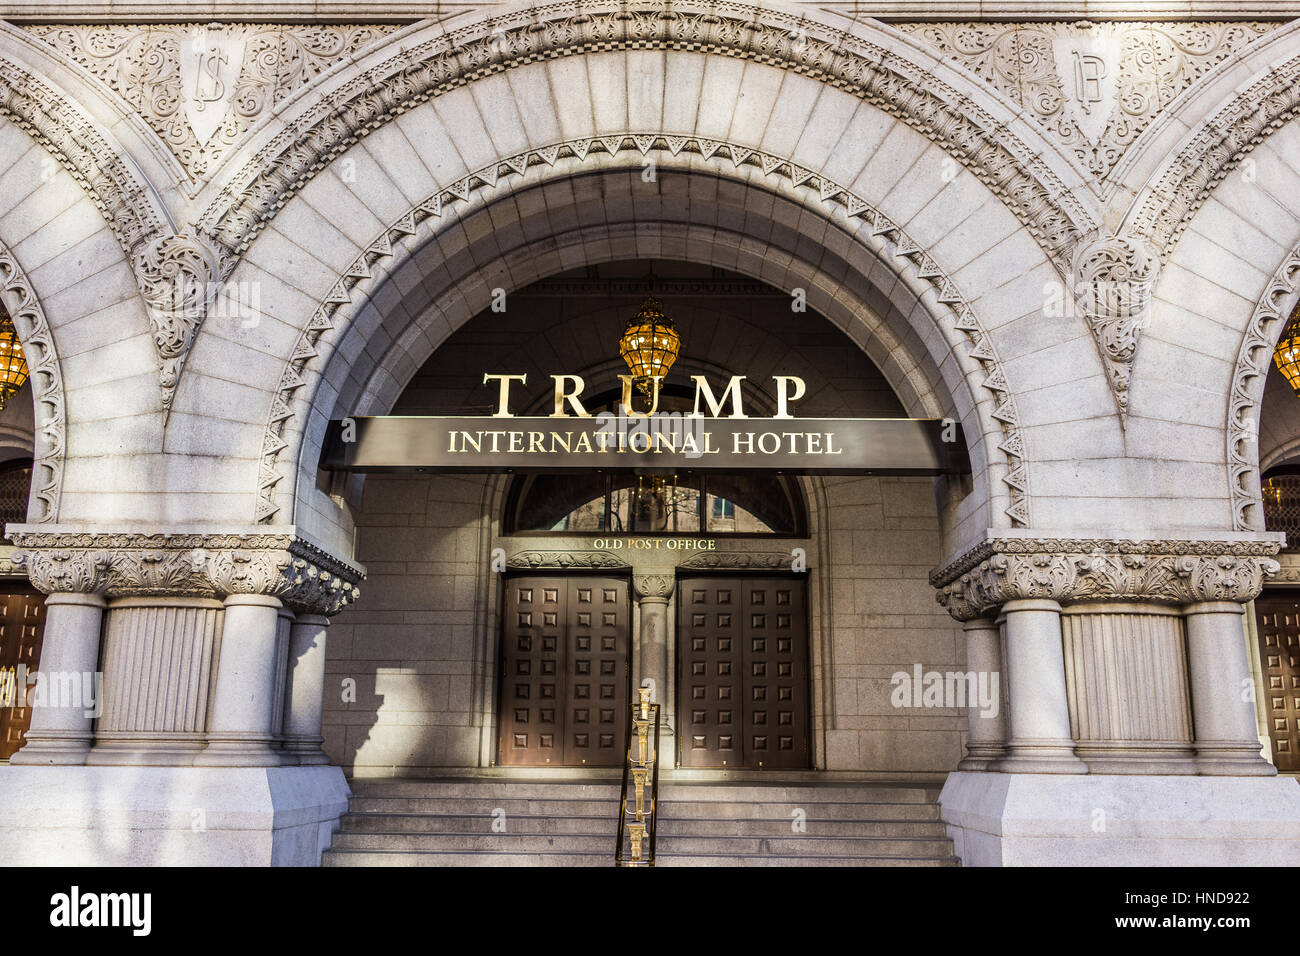 Washington DC, USA - January 28, 2017: Trump International Hotel and the Old Post Office Tower entrance - Stock Image